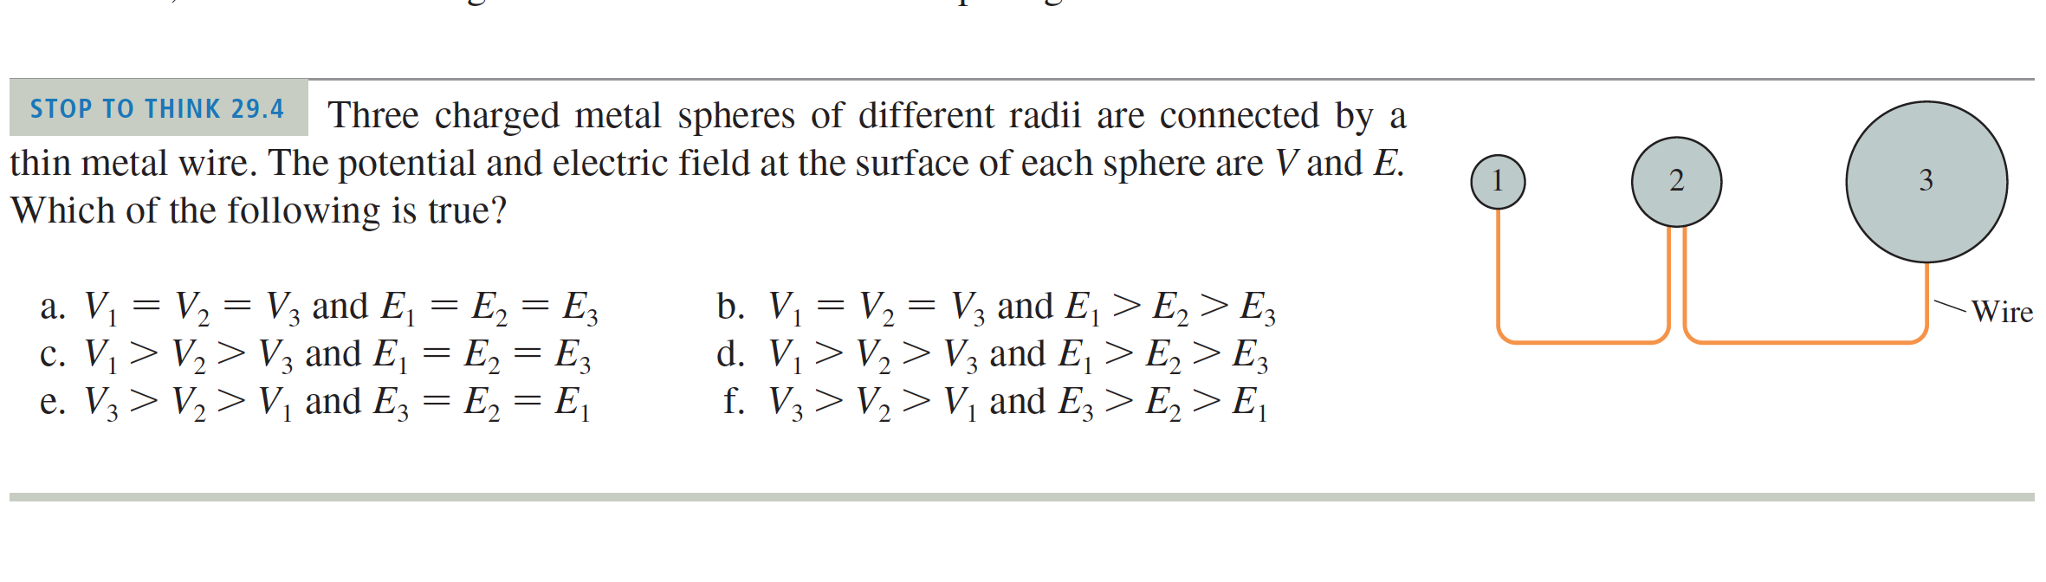 Solved: Three Charged Metal Spheres Of Different Radii Are ...